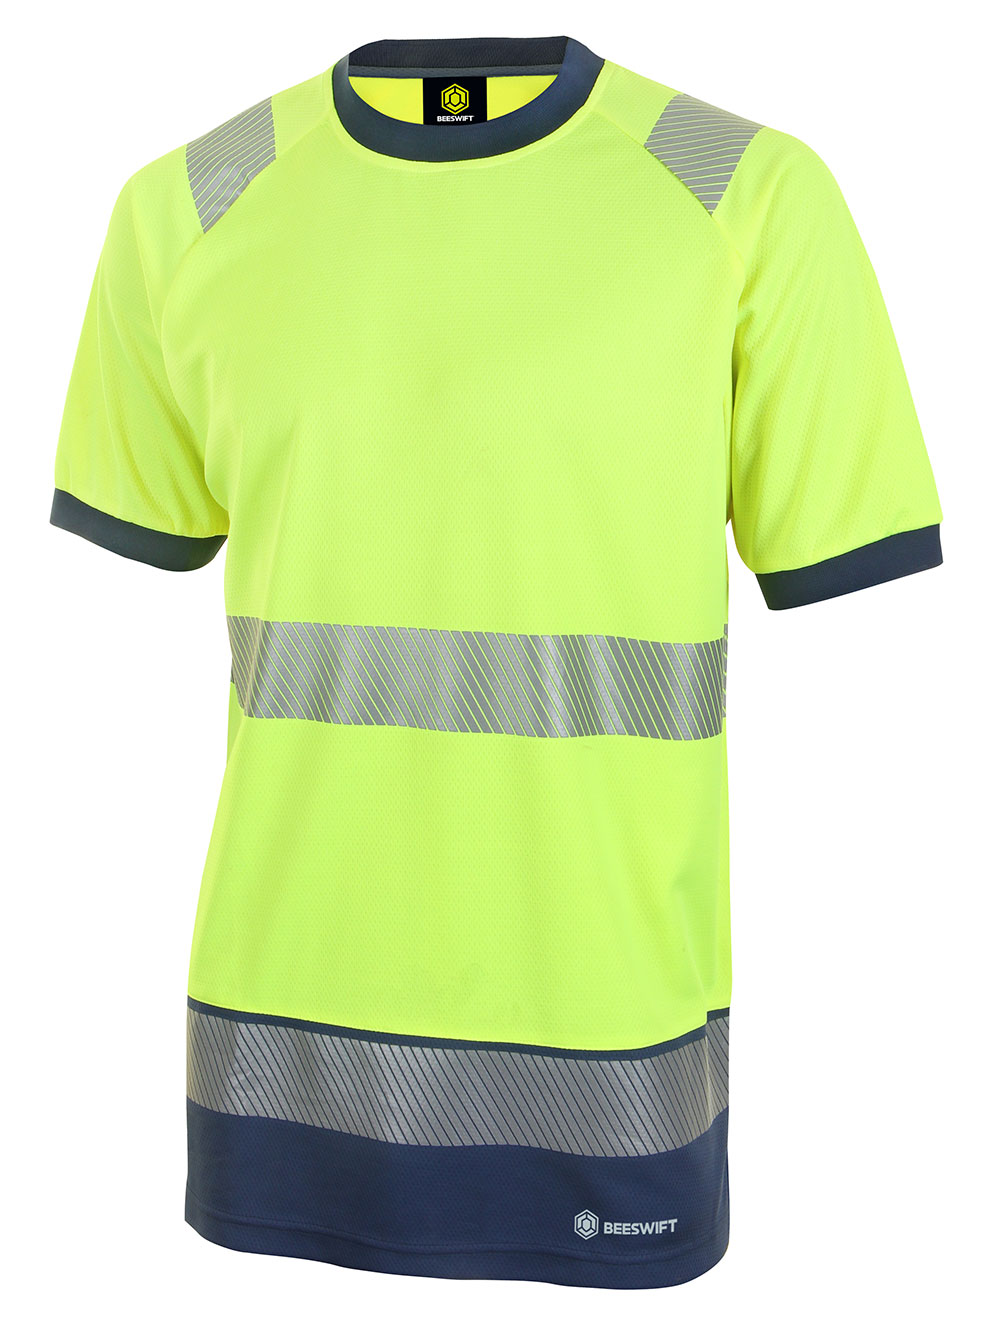 HIVIS TWO TONE SHORT SLEEVE T SHIRT